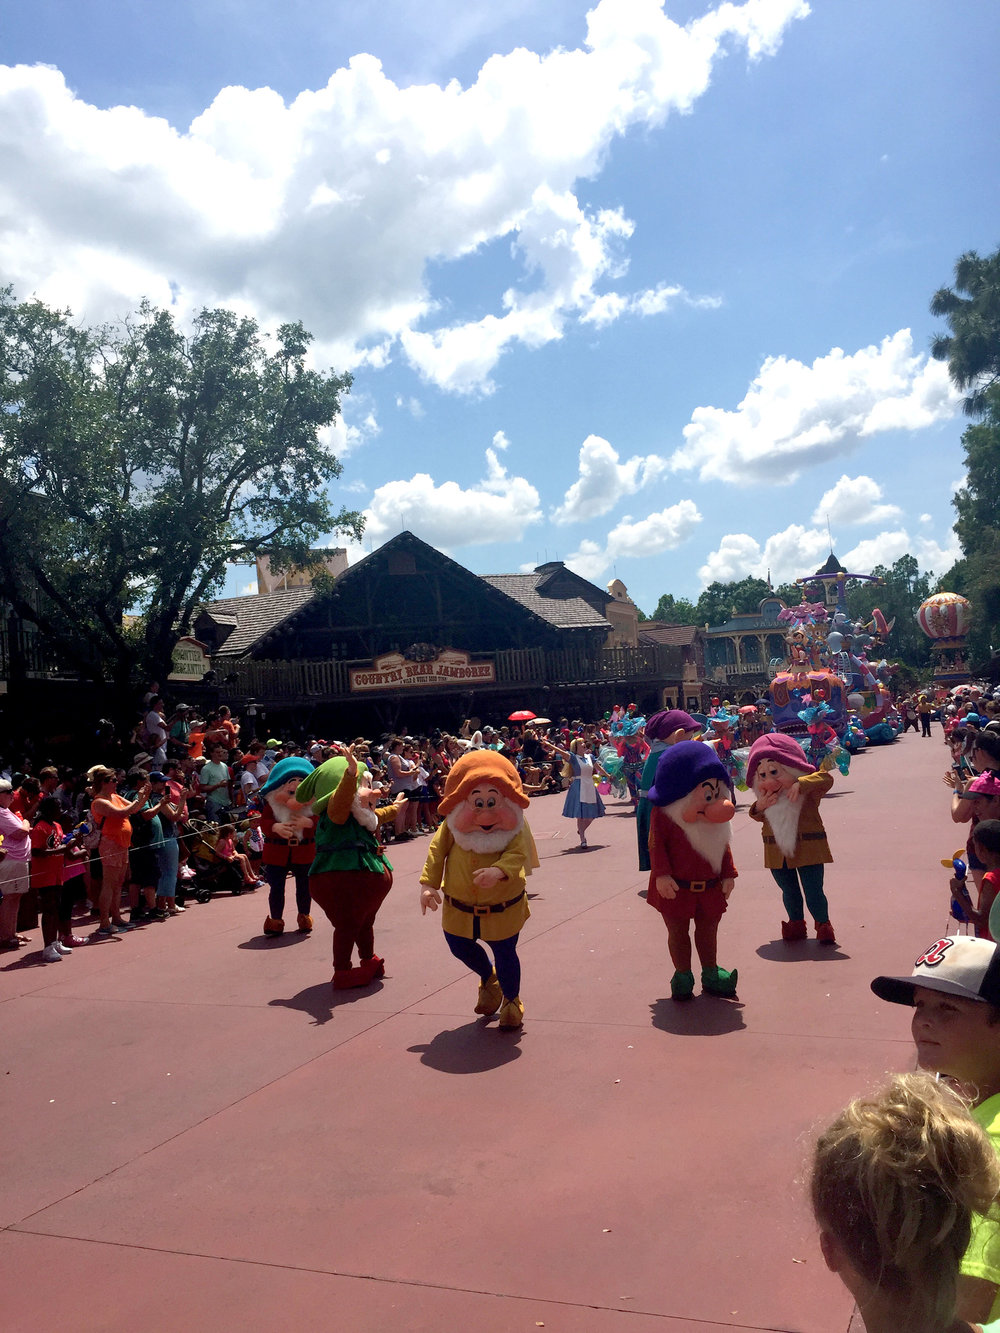 It was great to see all the dwarfs leading this section of the parade, since that was Walt's first movie.